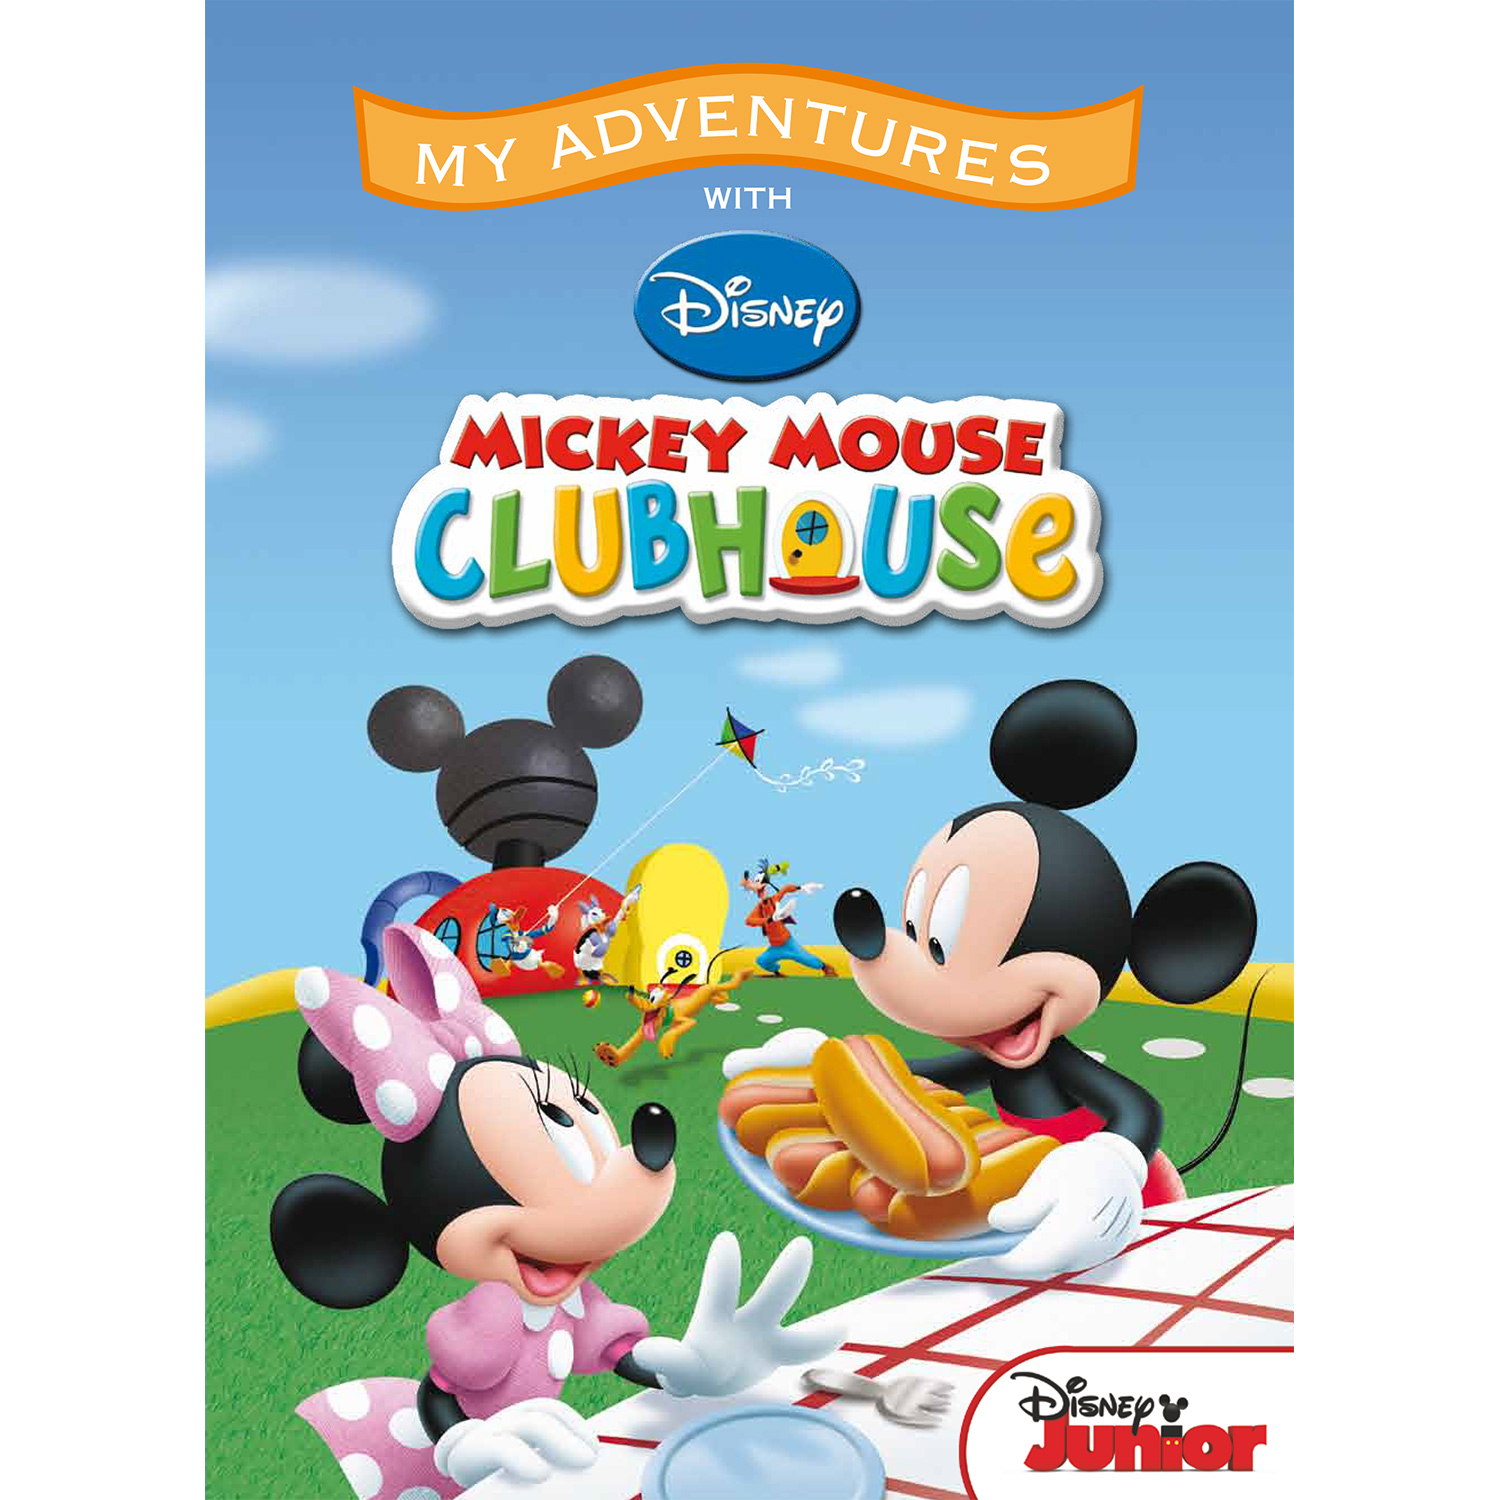 My Adventures with the Mickey Mouse Clubhouse  - 8x11 Soft Cover Book